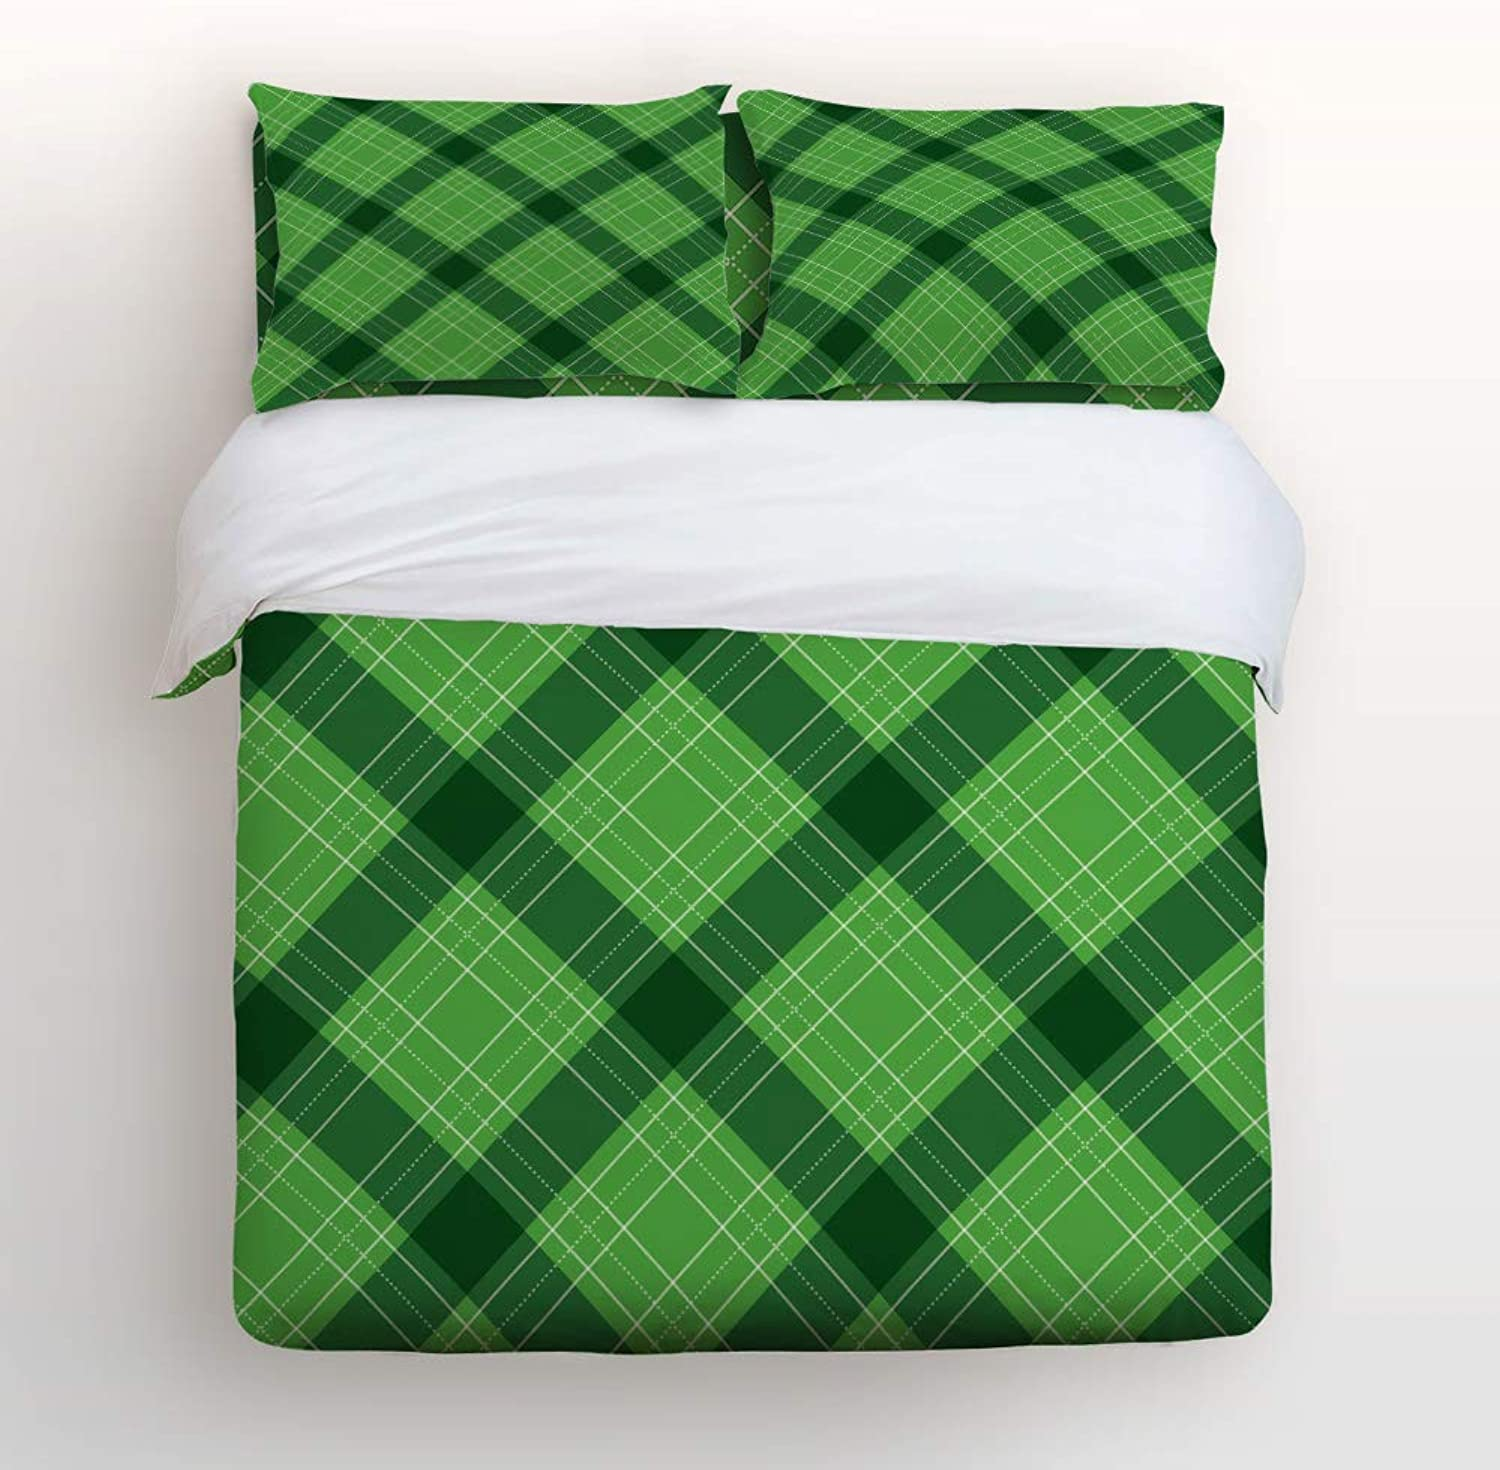 LAMANDA Happy St. Patrick's Day 4pcs Bed Set Rustic Green Scottish Plaid Bedding Sets Duvet Cover Flat Sheet No Comforter with Decorative Pillow Shams for Kids Women Men Teens